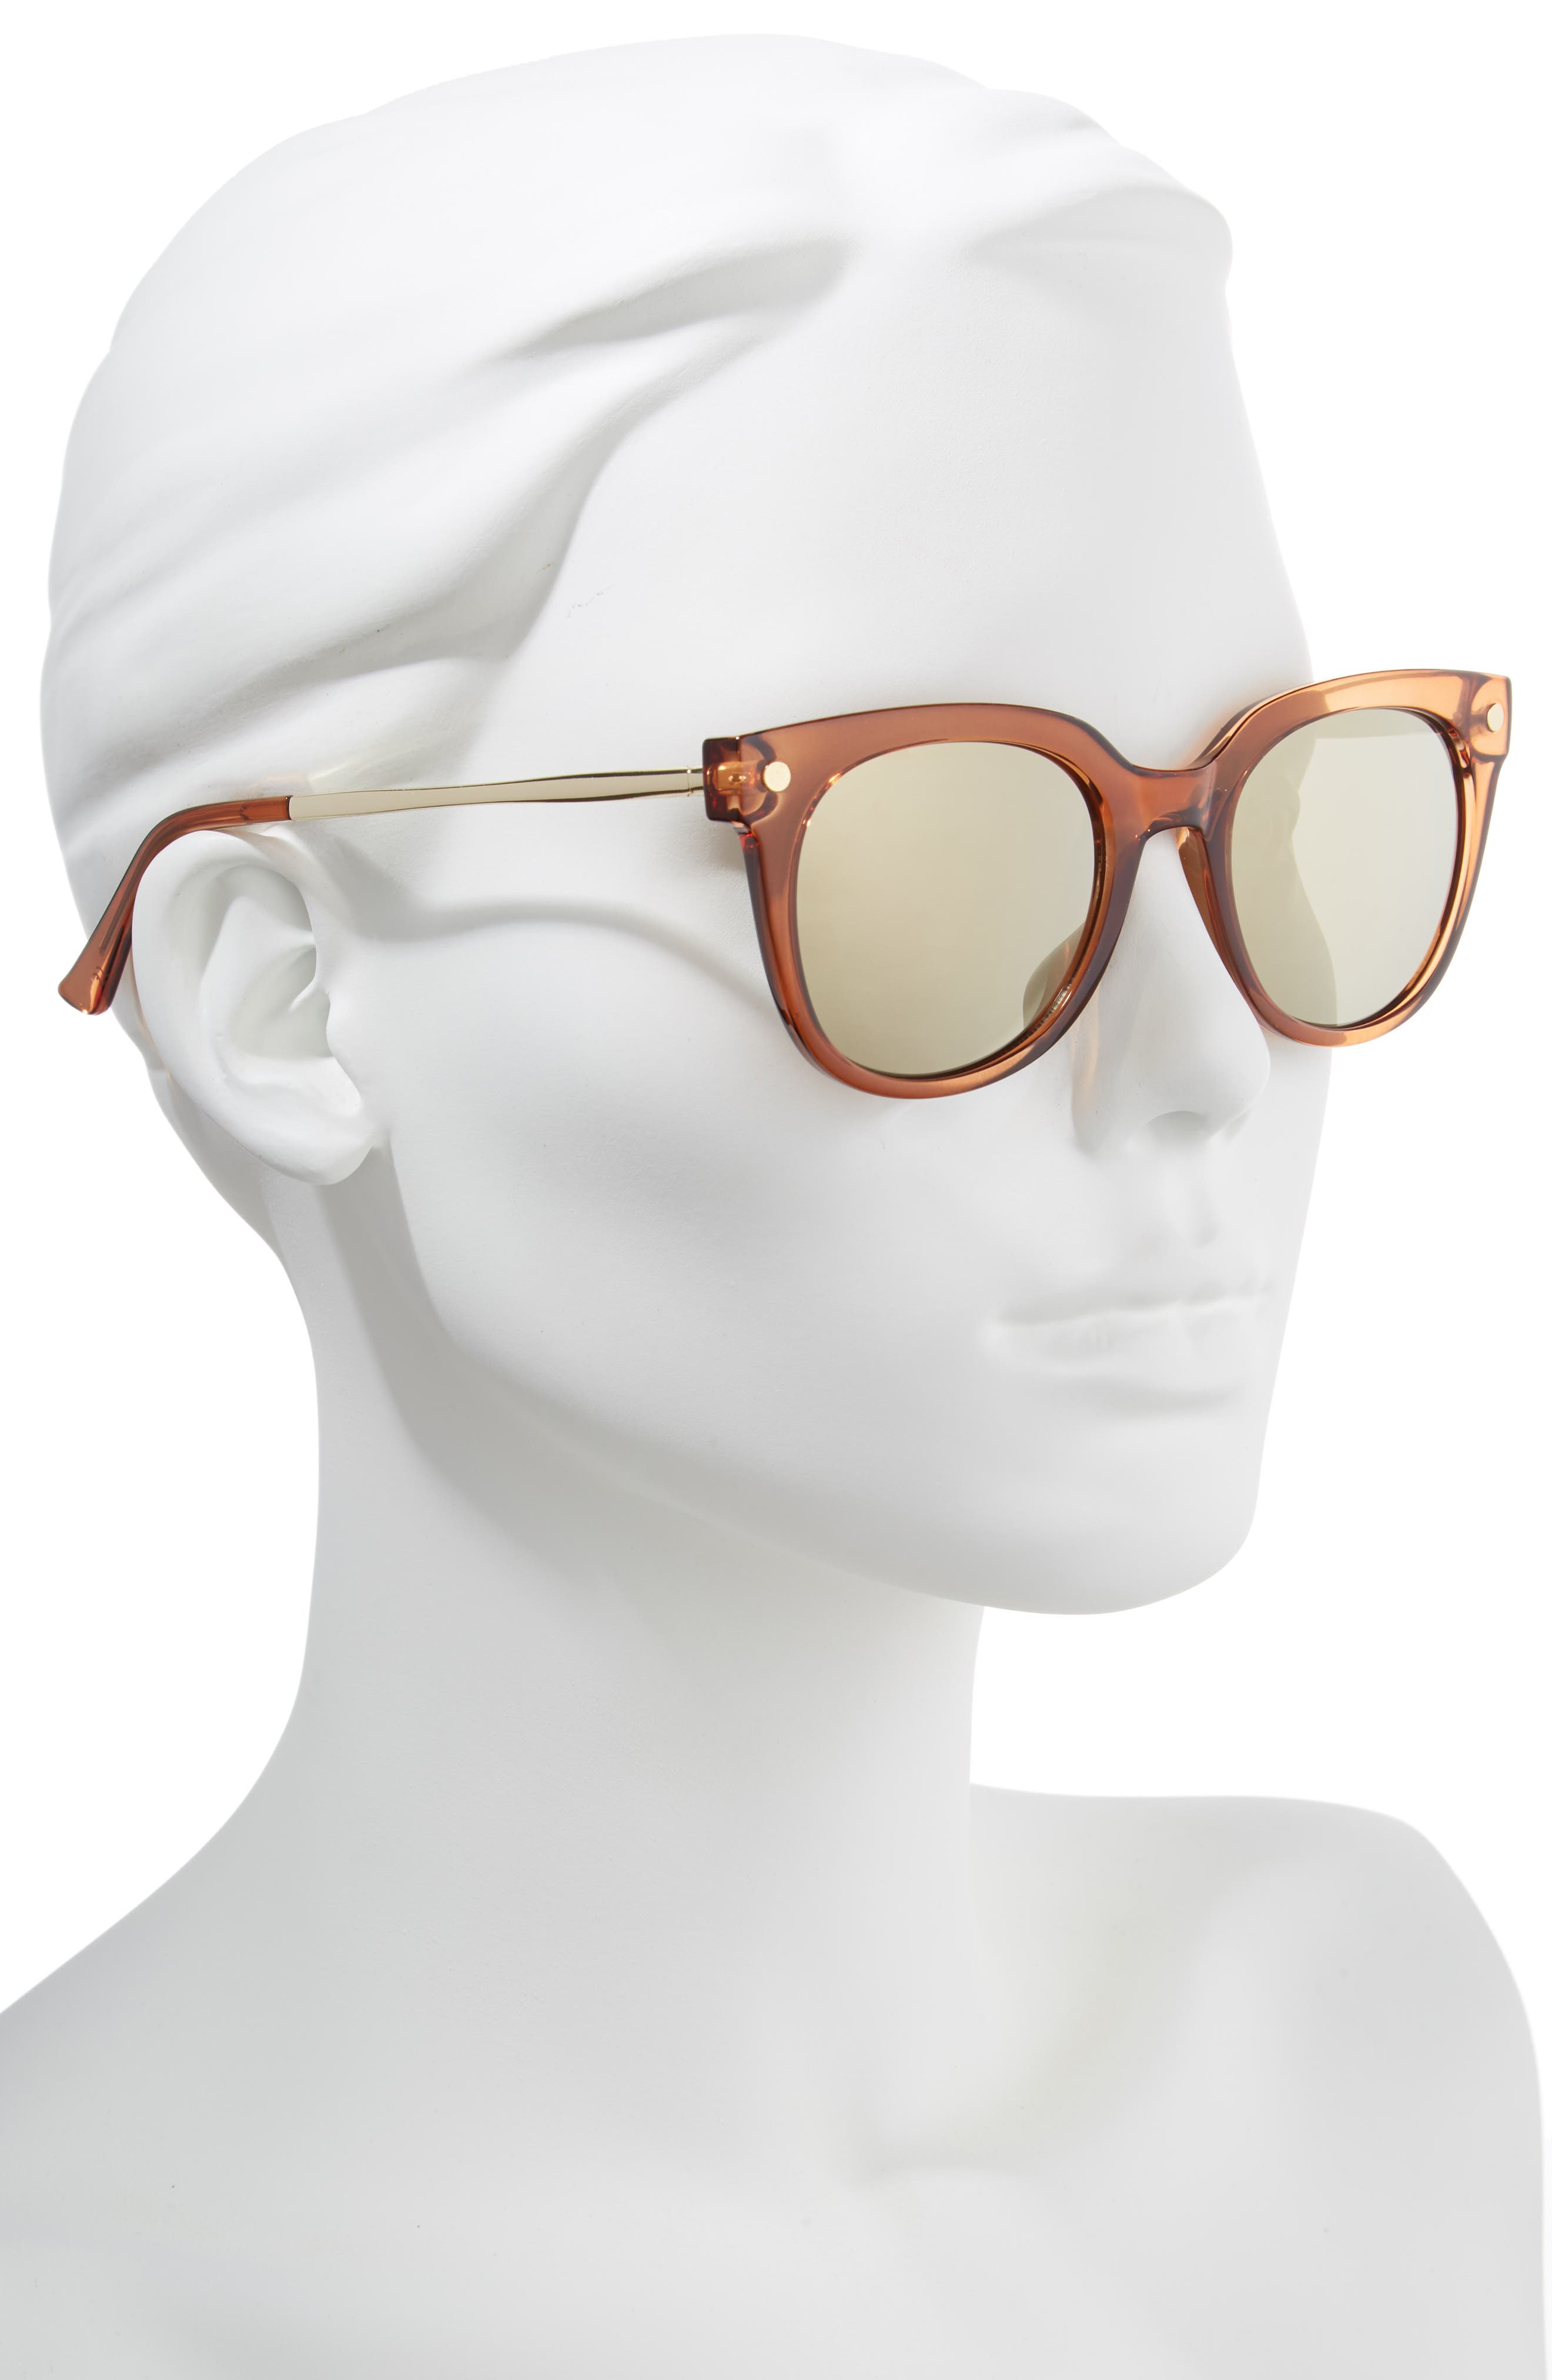 Malabar 52mm Sunglasses,                             Alternate thumbnail 2, color,                             Maple